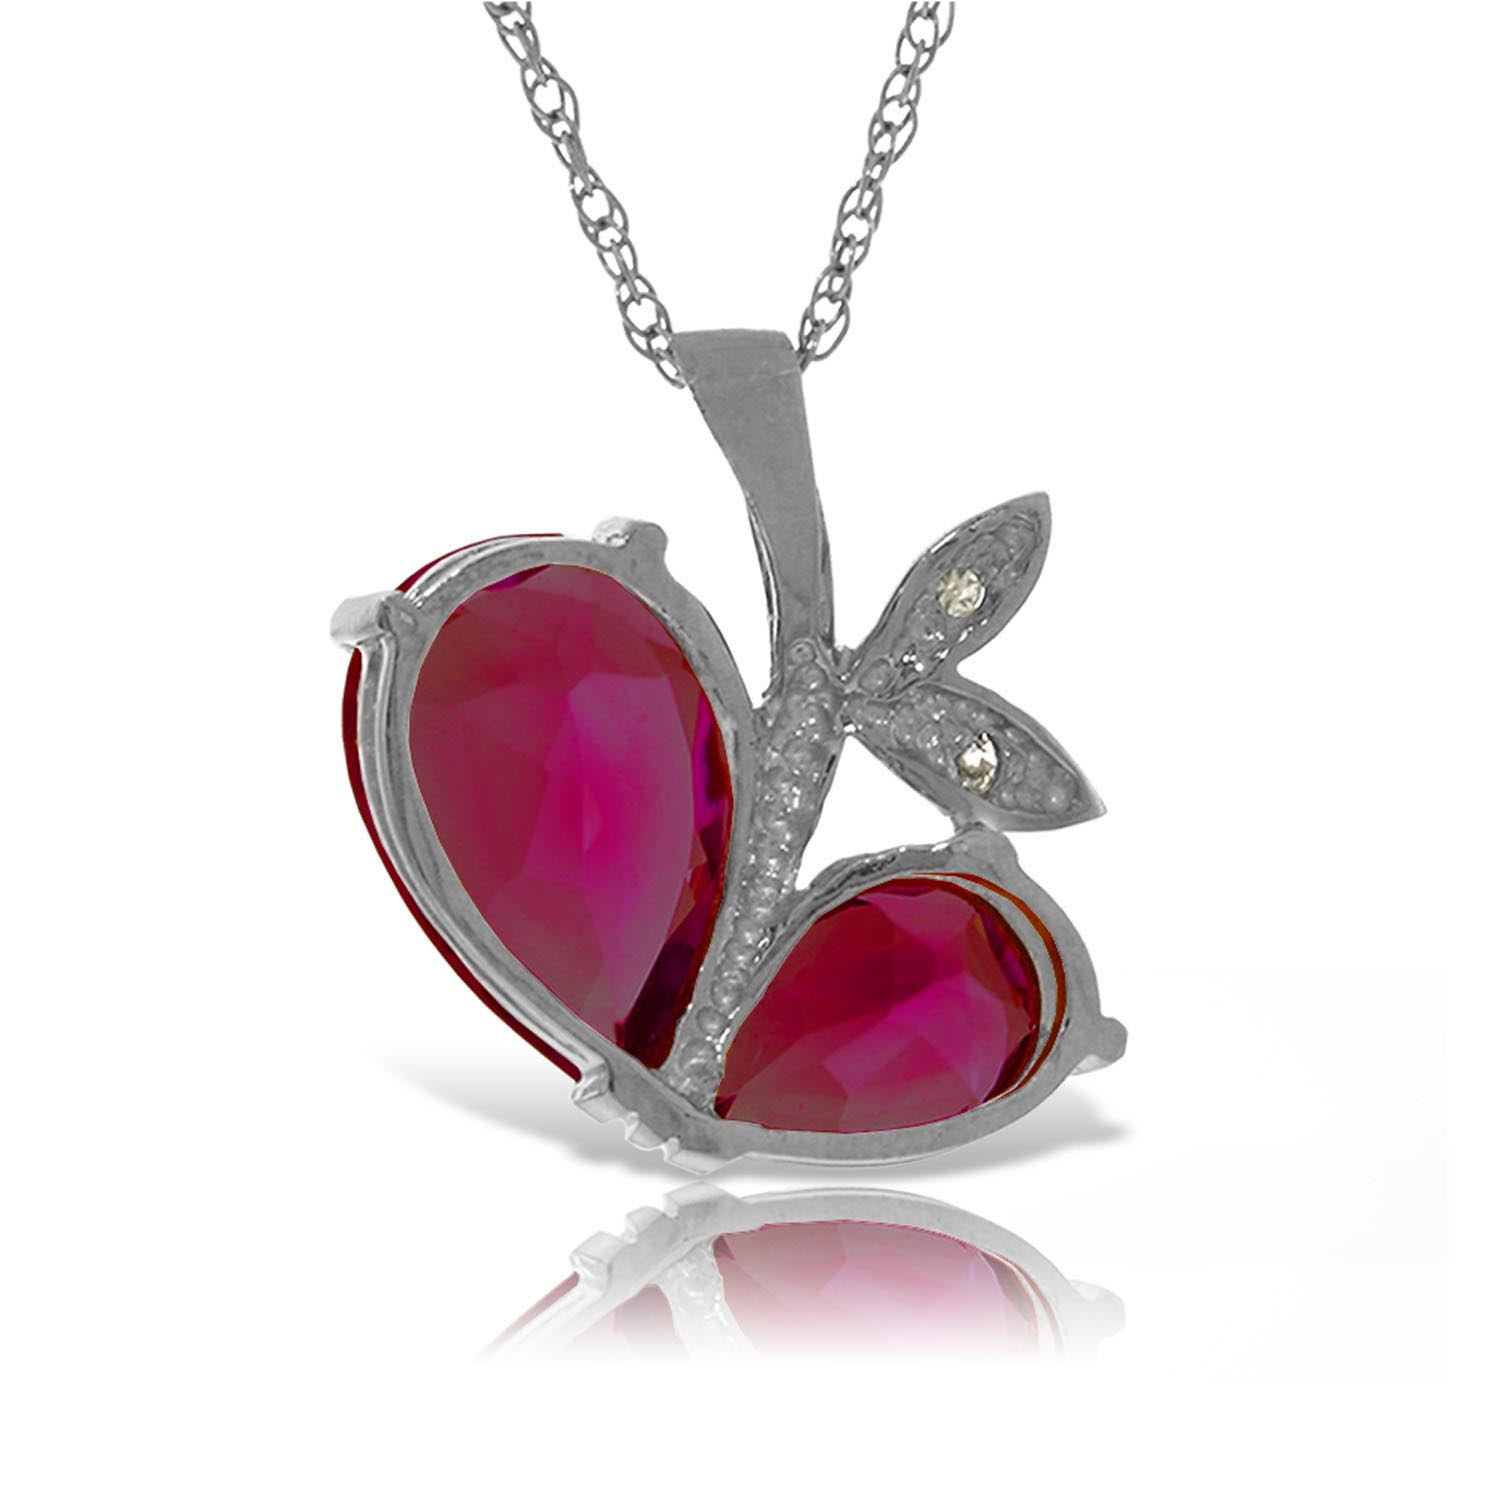 Ruby & Diamond Eternal Pendant Necklace in 9ct White Gold